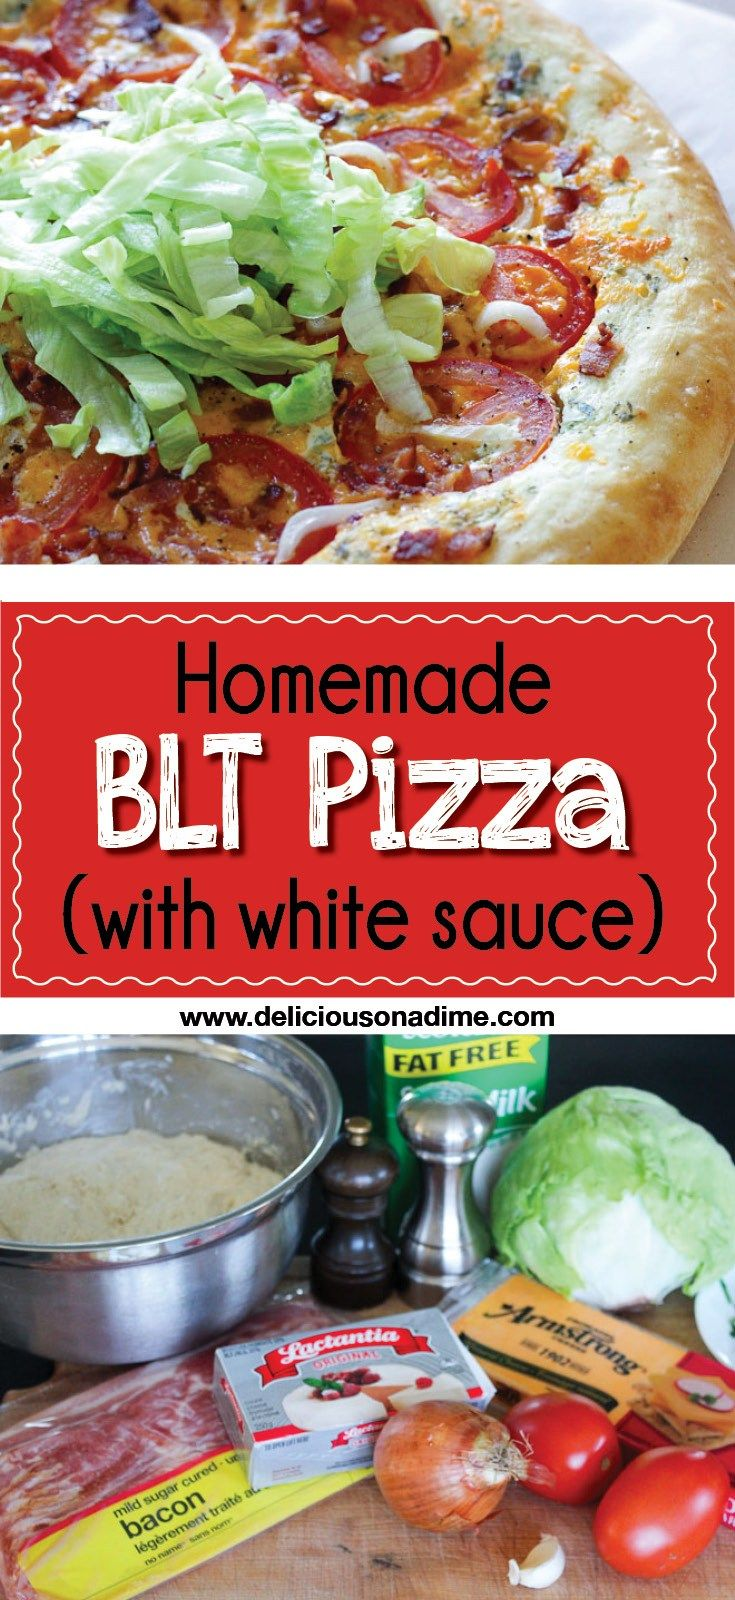 This Homemade BLT Pizza (with white sauce) recipe is a refreshing new spin on everyone's beloved classic BLT. Smoky bacon, fresh tomatoes, crunchy lettuce and a creamy white sauce will make this homemade pizza your new favourite way to enjoy a BLT.